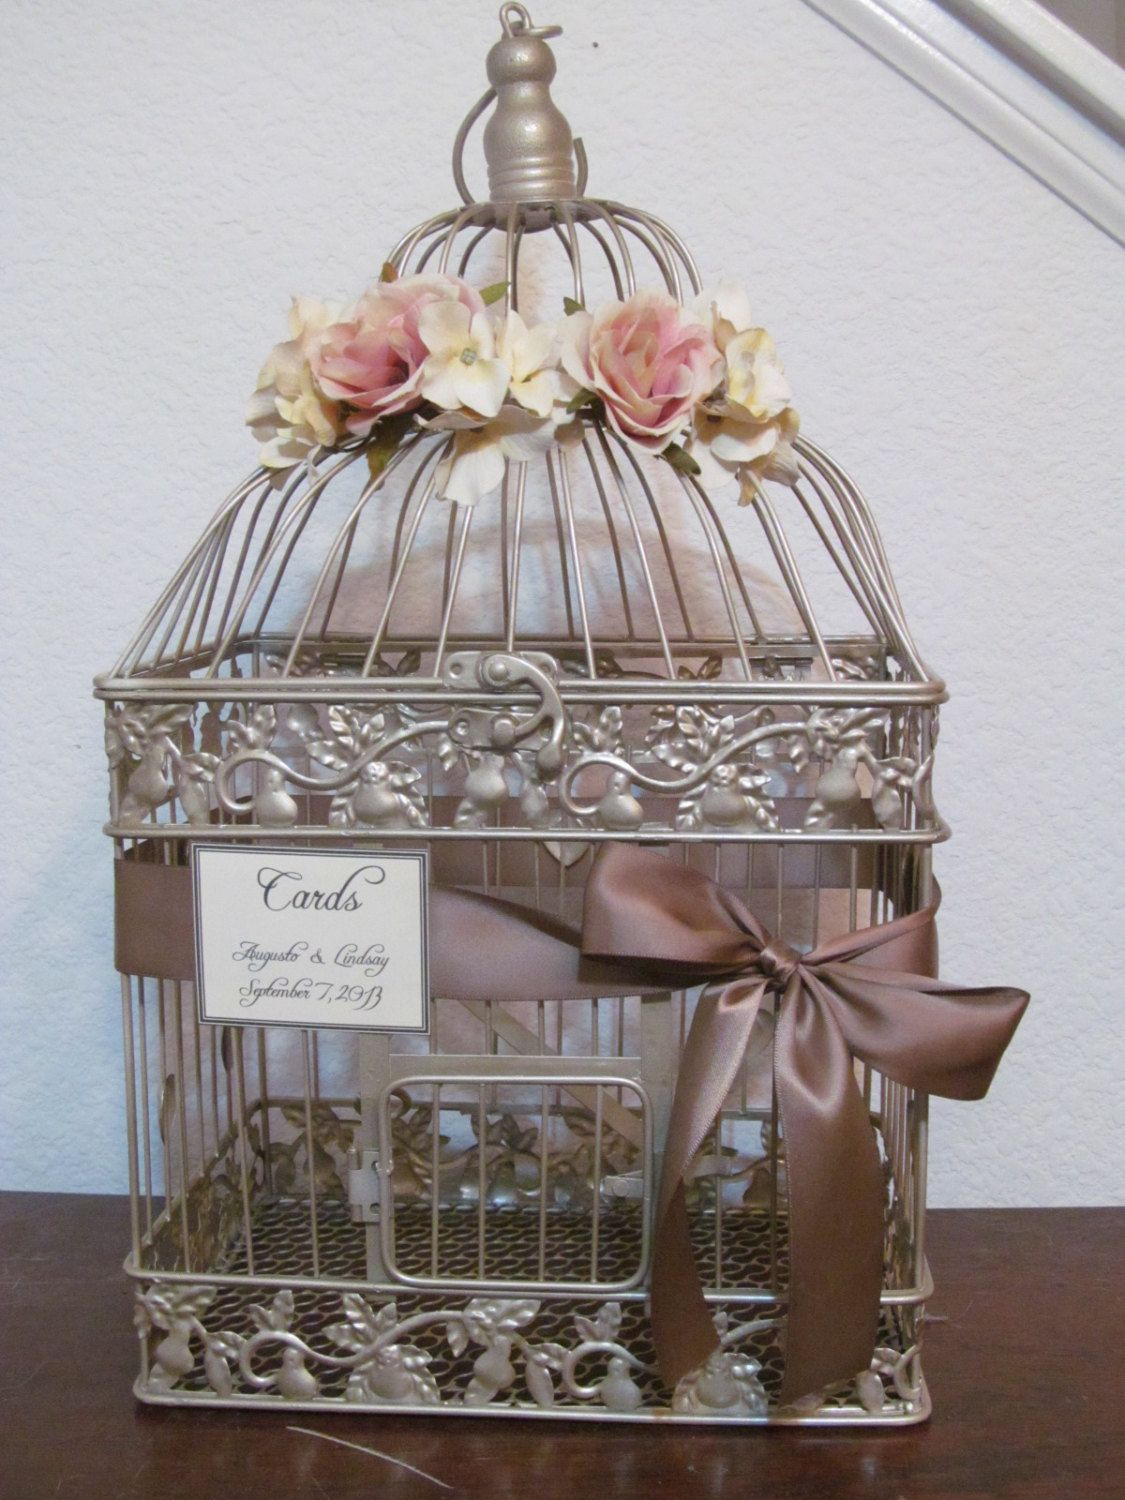 Pin By Paula Bakker On Birdcage Centrepieces Pinterest Birdcage